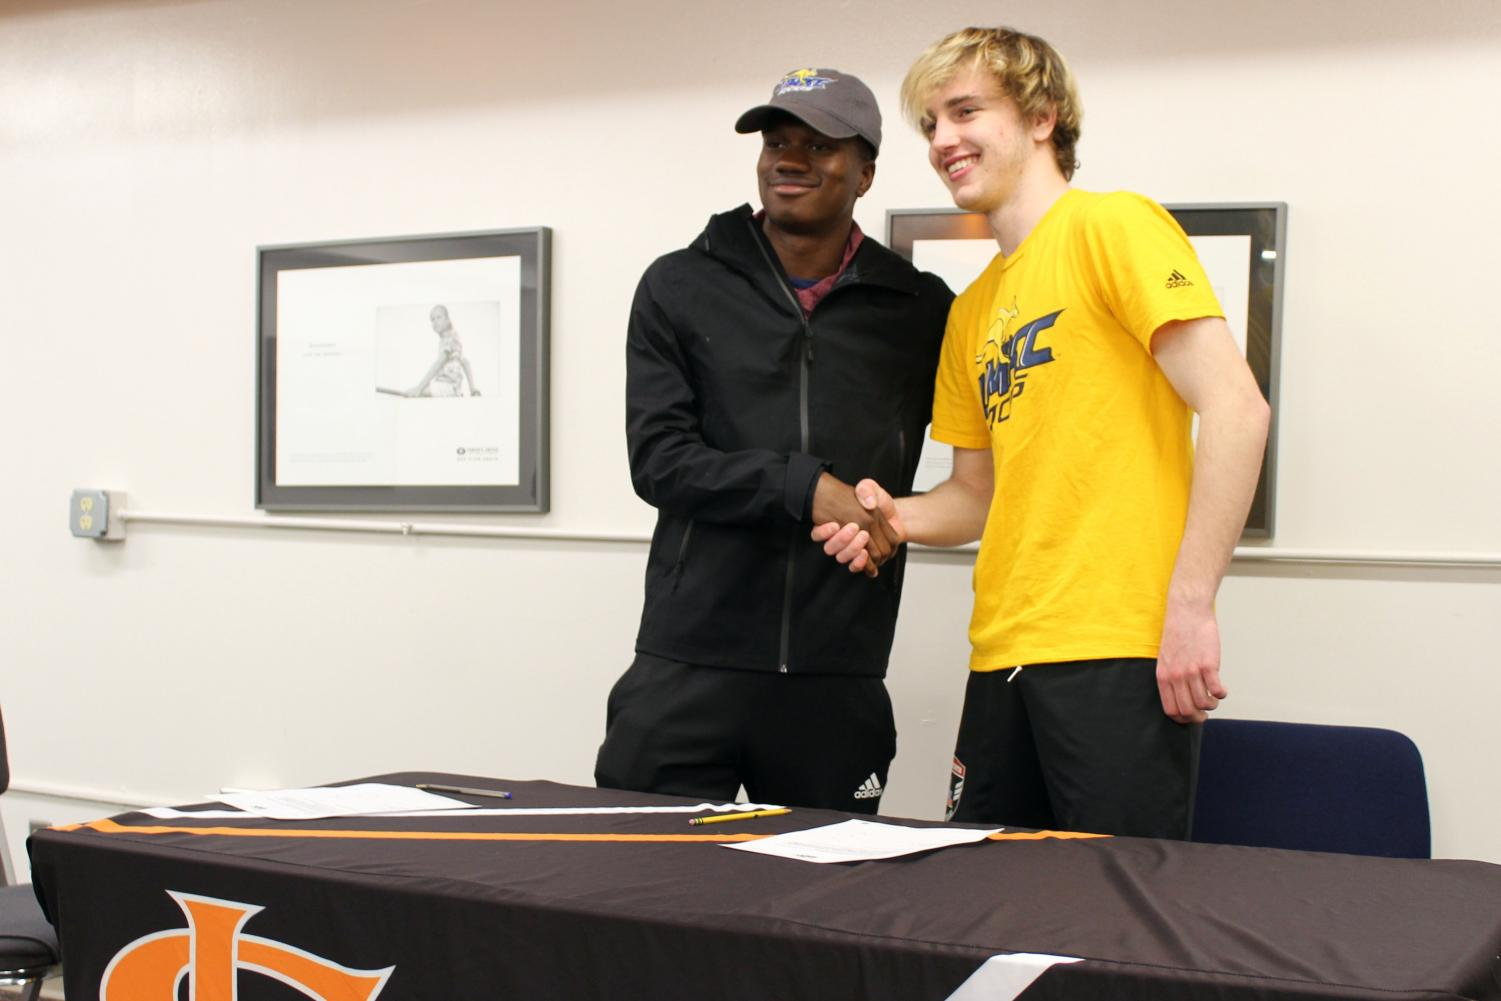 Seniors Emmanuel Iwe and Zinedine Kroeten shake hands after signing to play soccer for University of Missouri Kansas City, April 21. They began playing together at the soccer club Joy of the People.